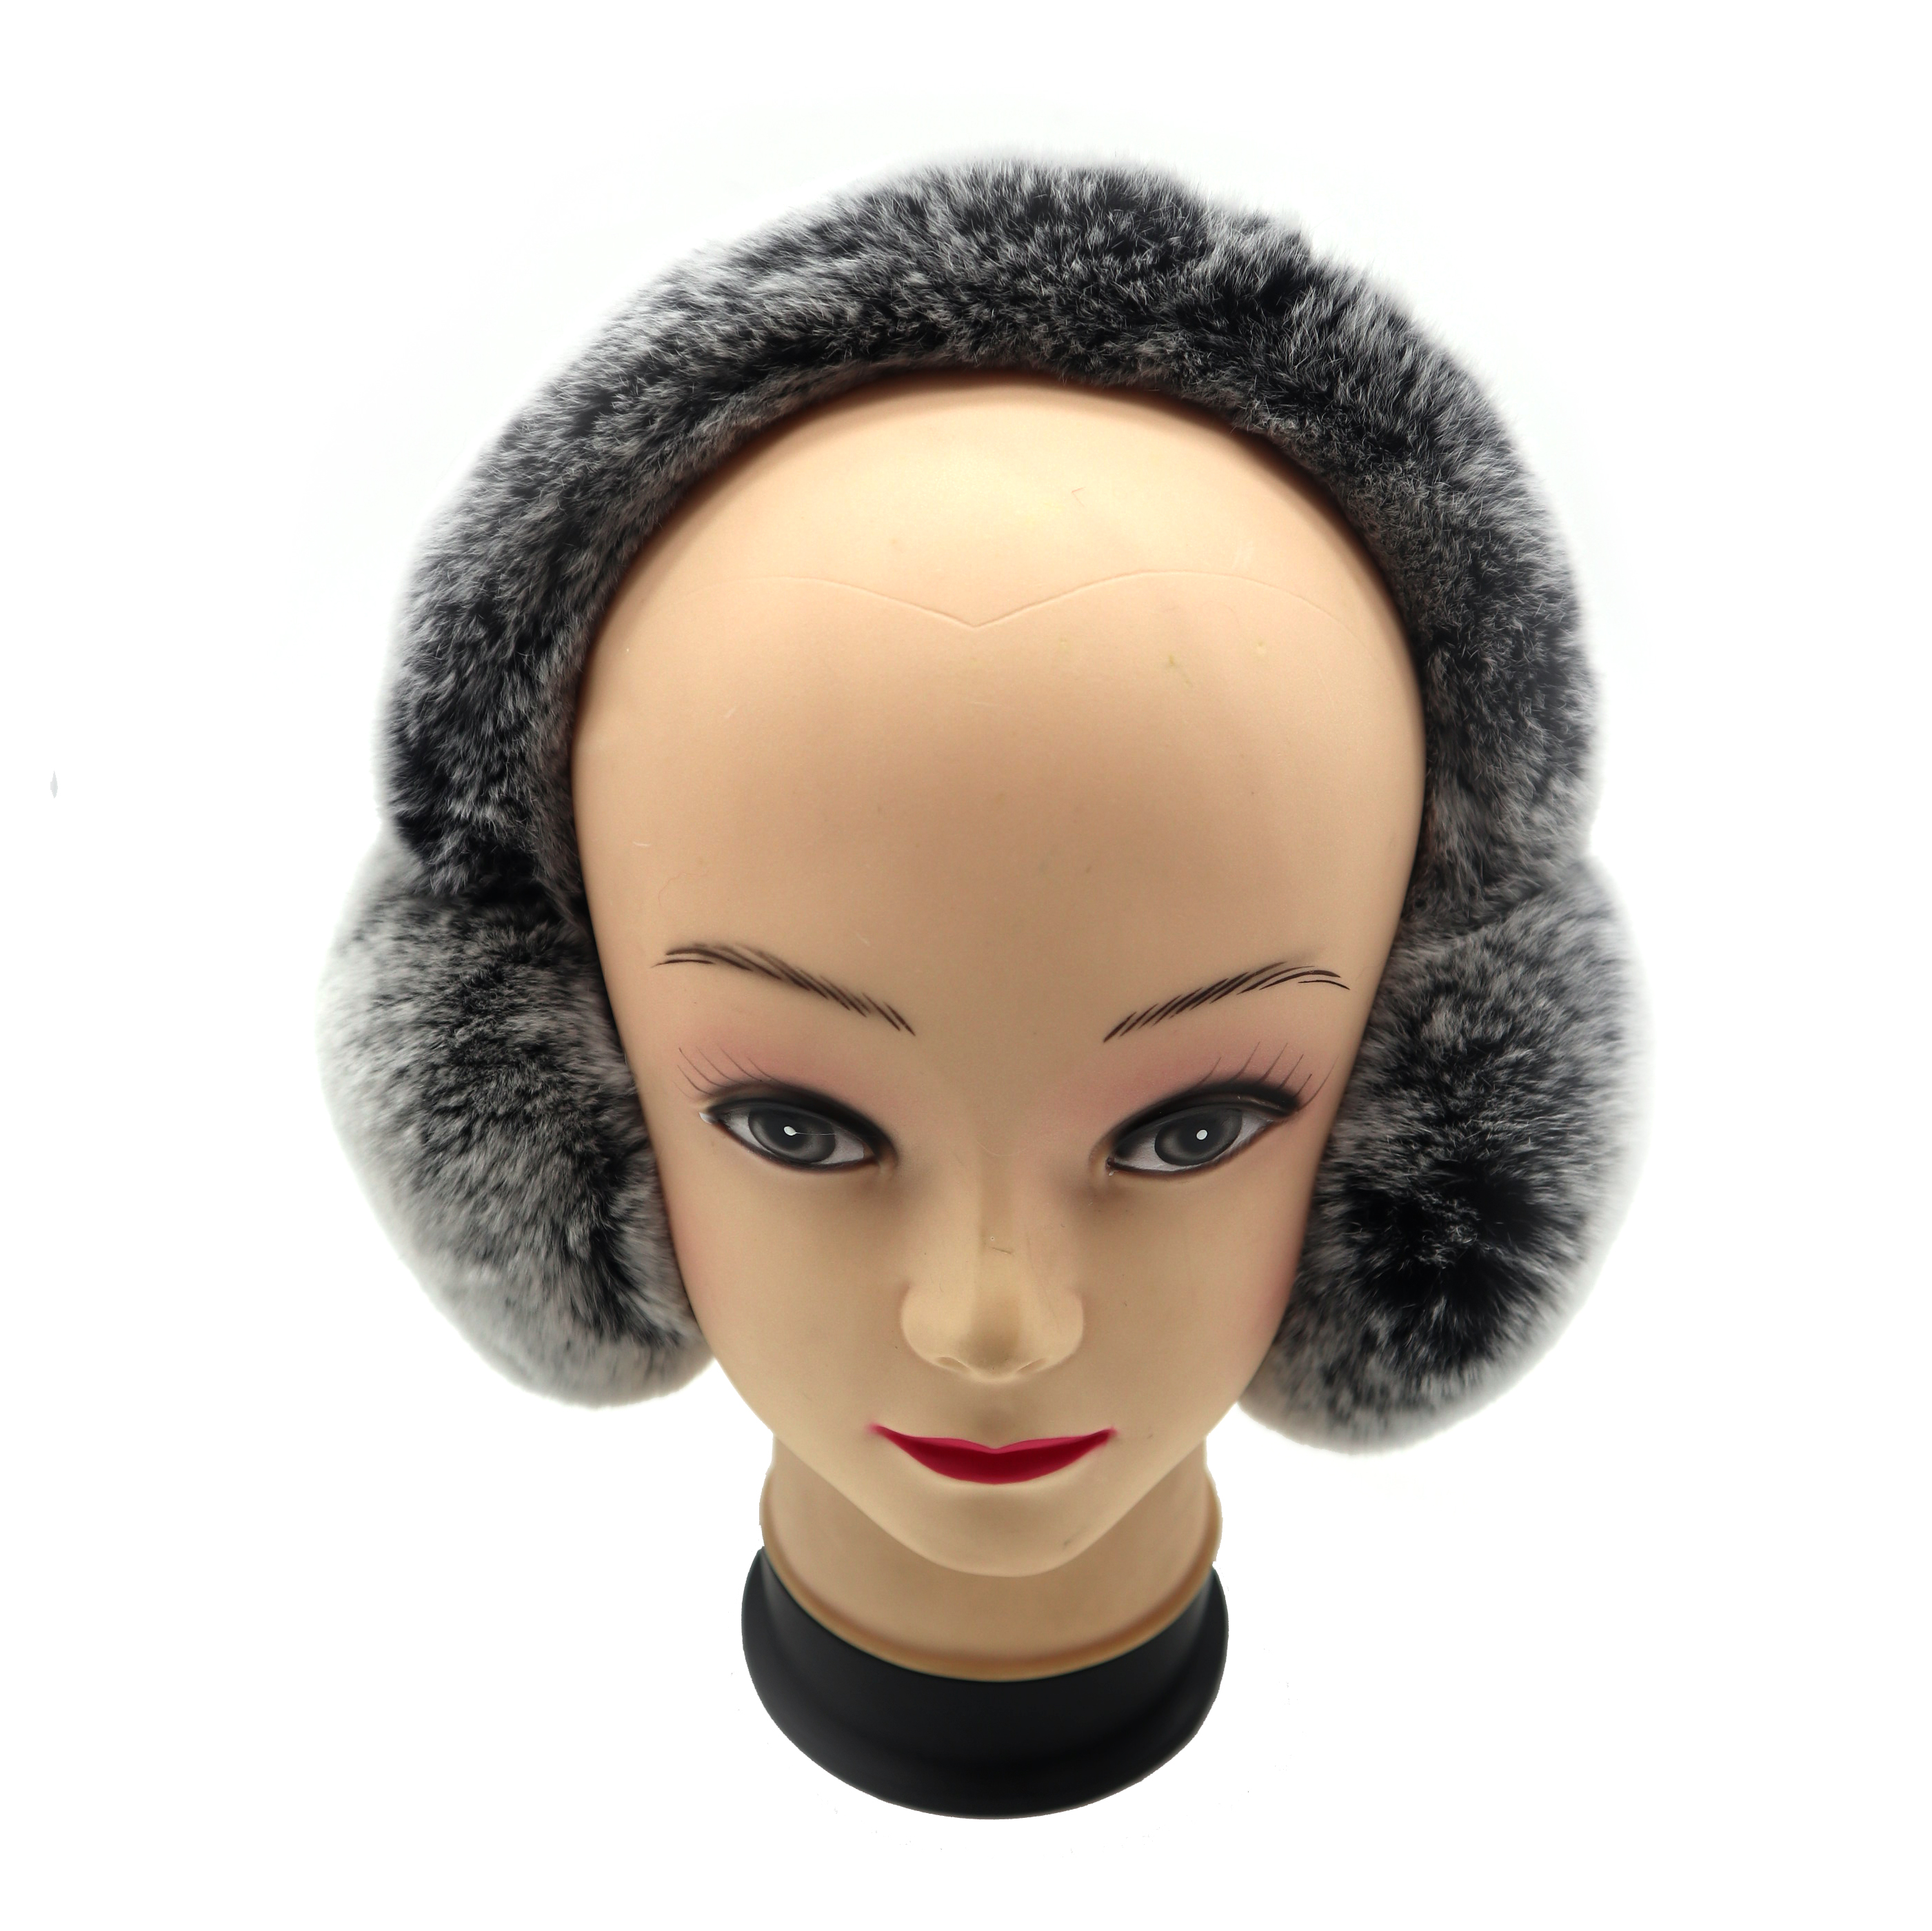 Real Fur 2019 New Fashion Novel Warm And Comfortable Quality Is Light And Easy To Carry  Rex Rabbit Hair Full Earmuffs